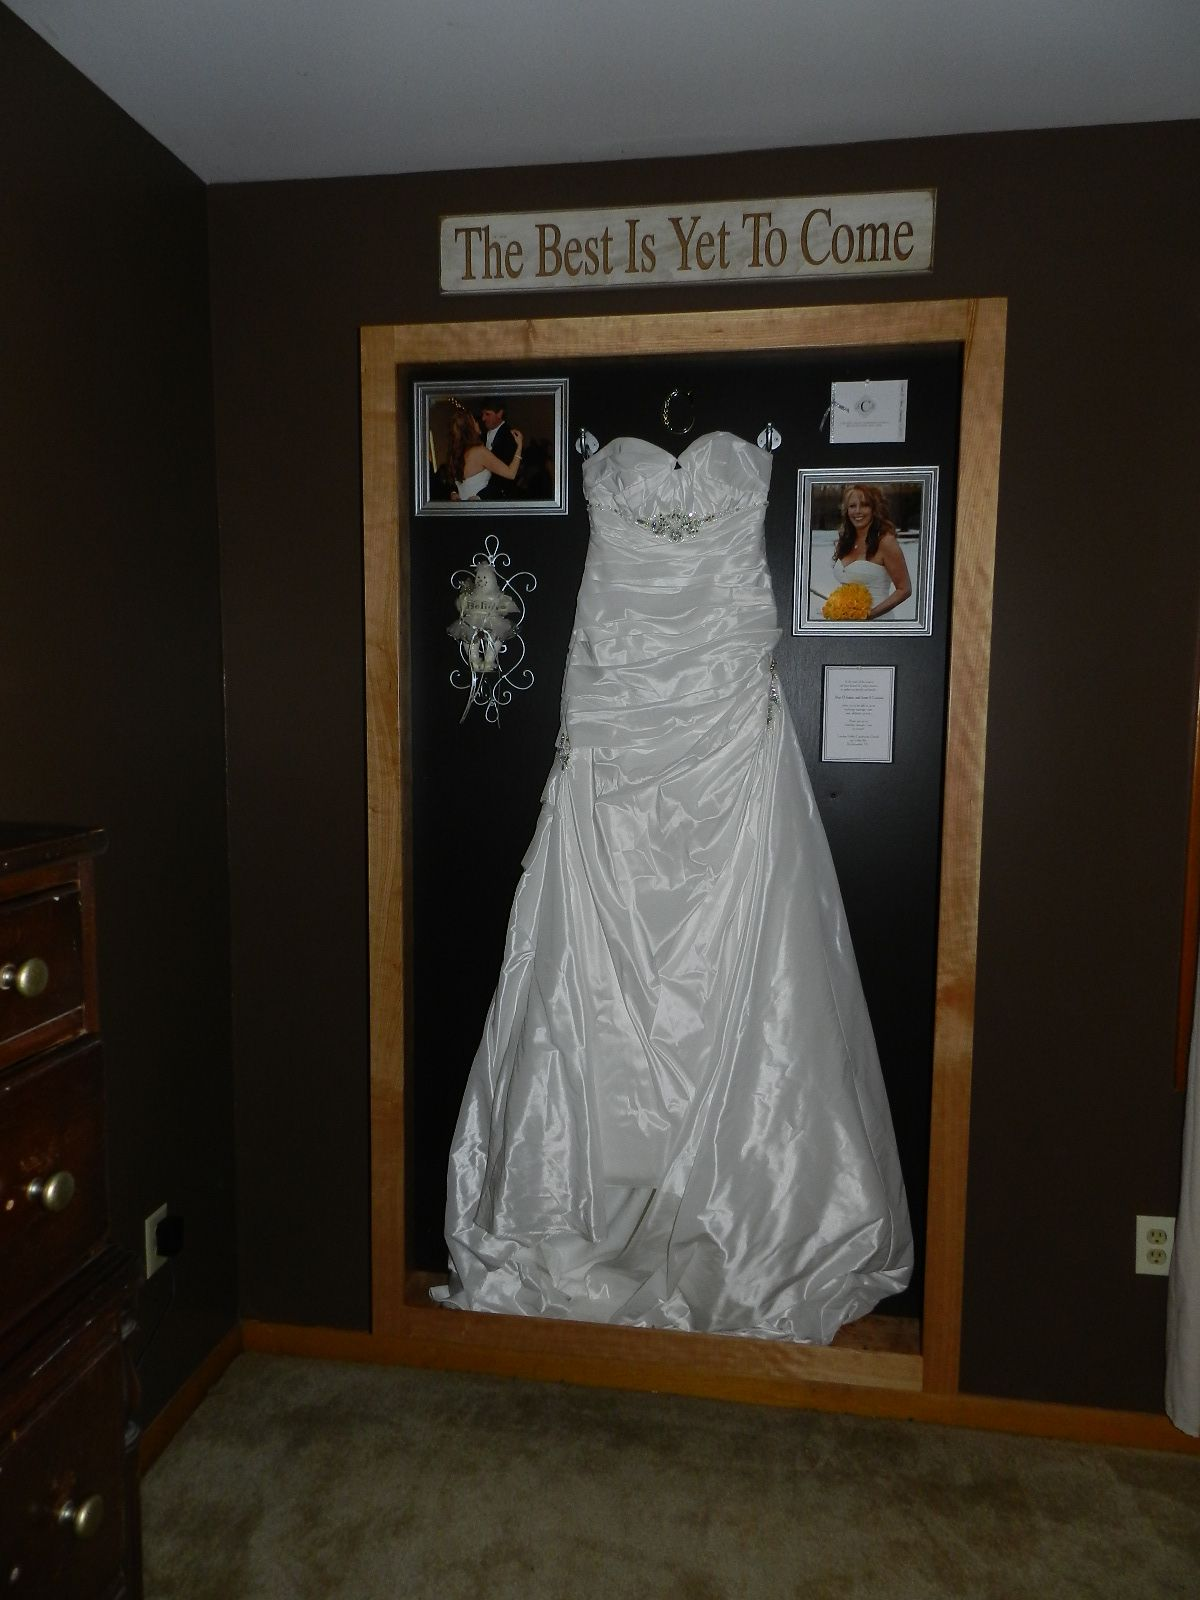 My Wedding Dress Shadow Box This Is Anniversary Gift From Husband Could